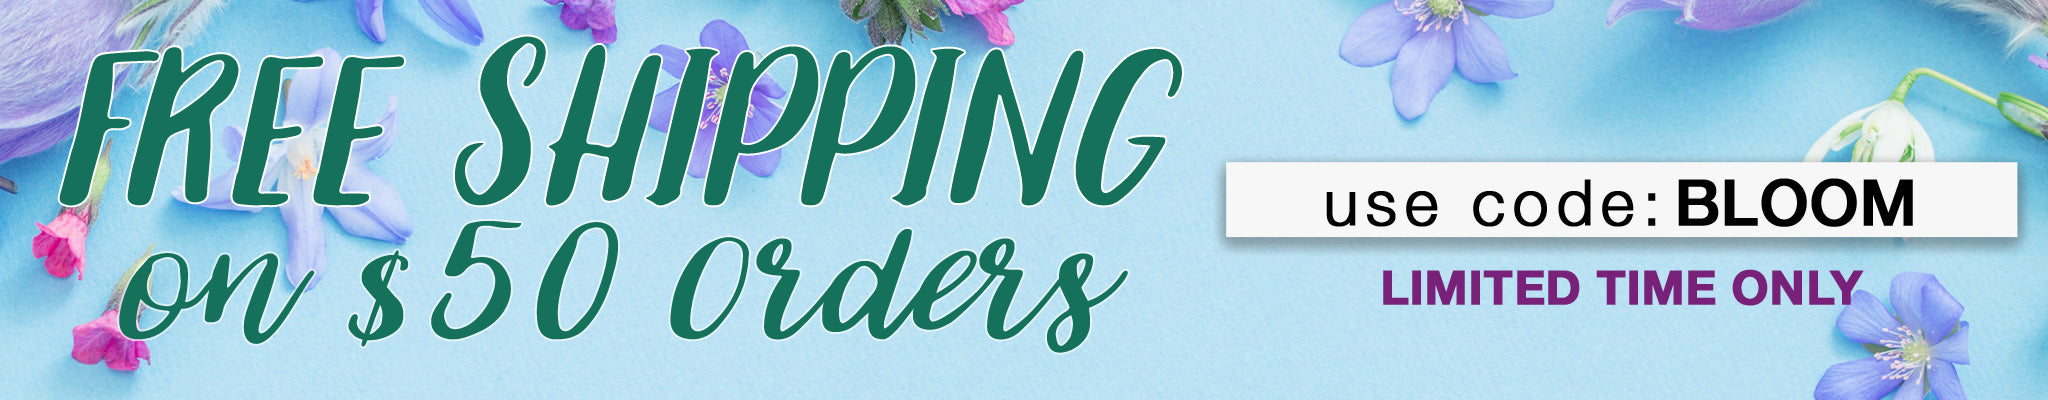 Free Shipping on $50 Orders   Use code: BLOOM   Limited Time Only